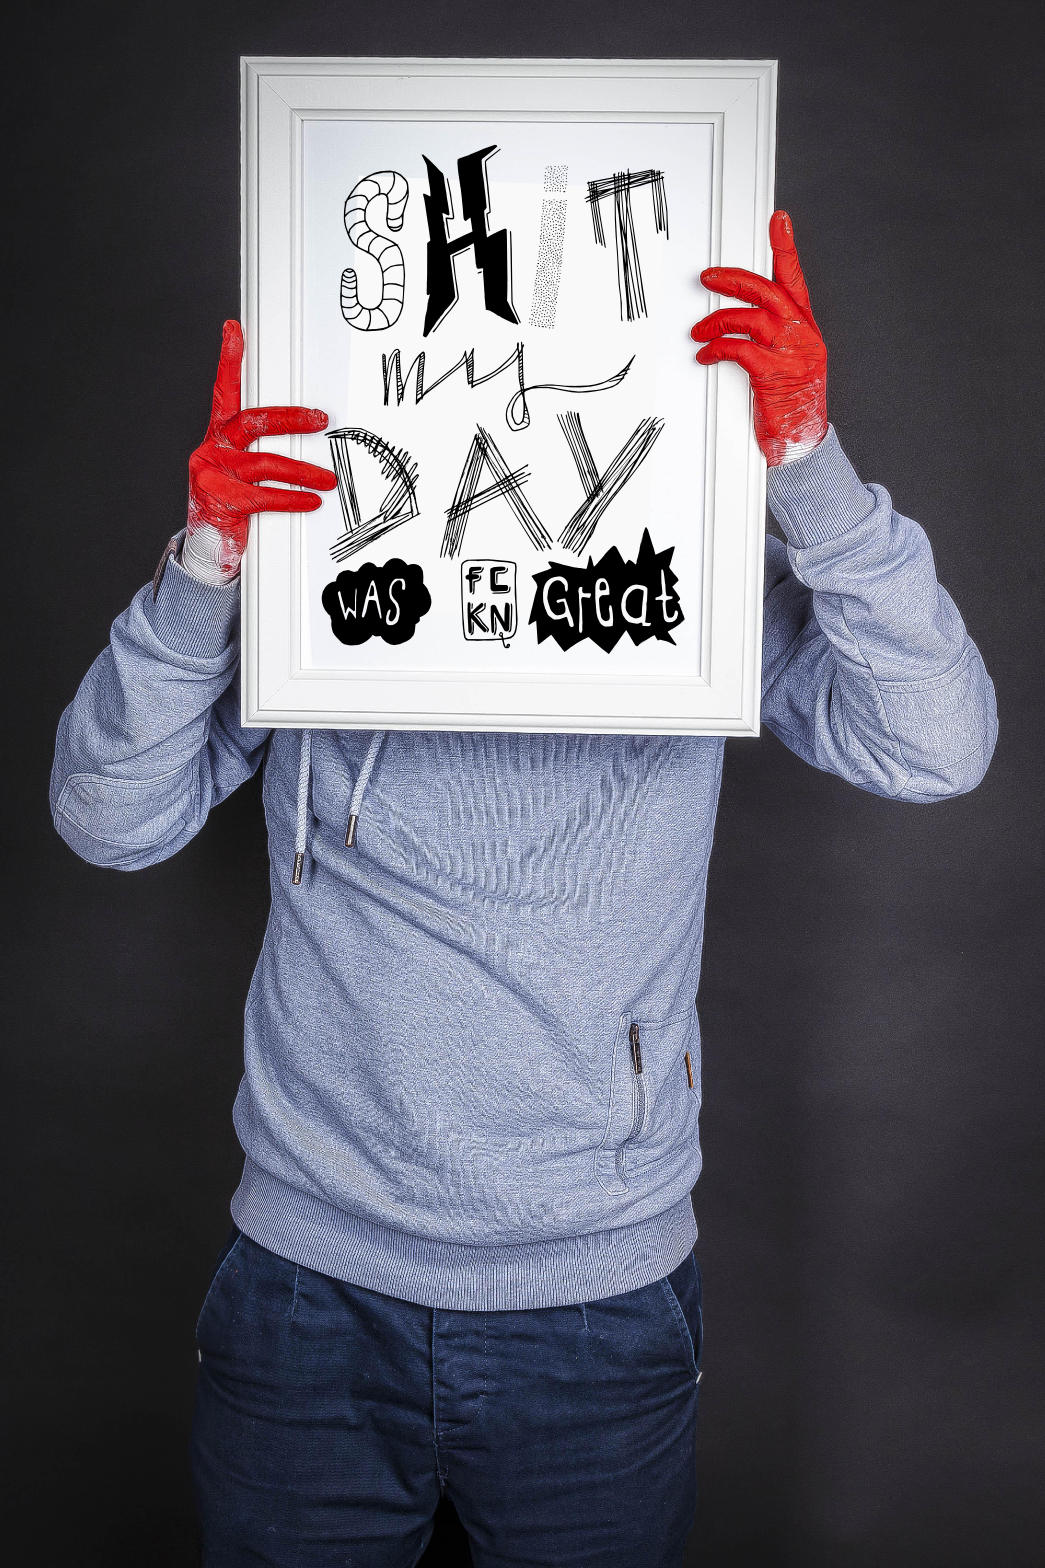 shit my day was fkn grat typo poster web